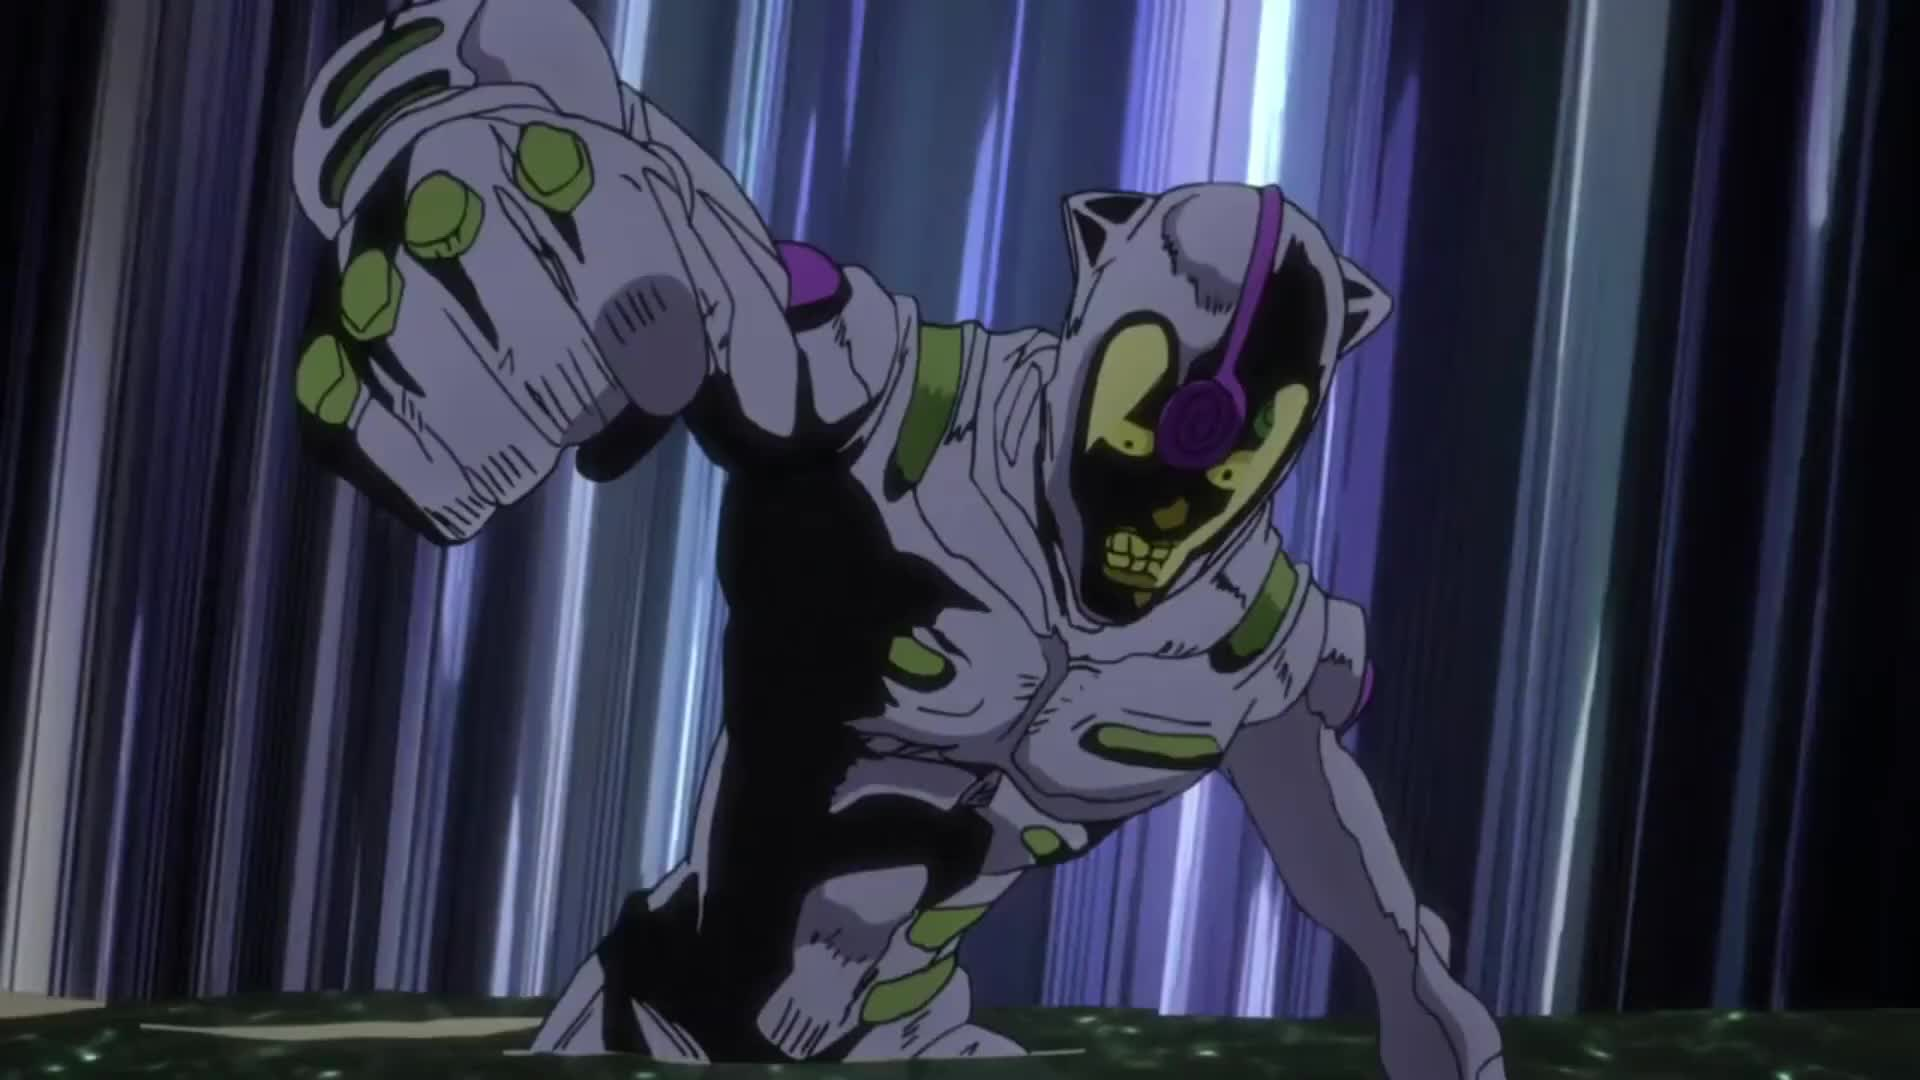 Jjba Part 5 Gifs Search | Search & Share on Homdor